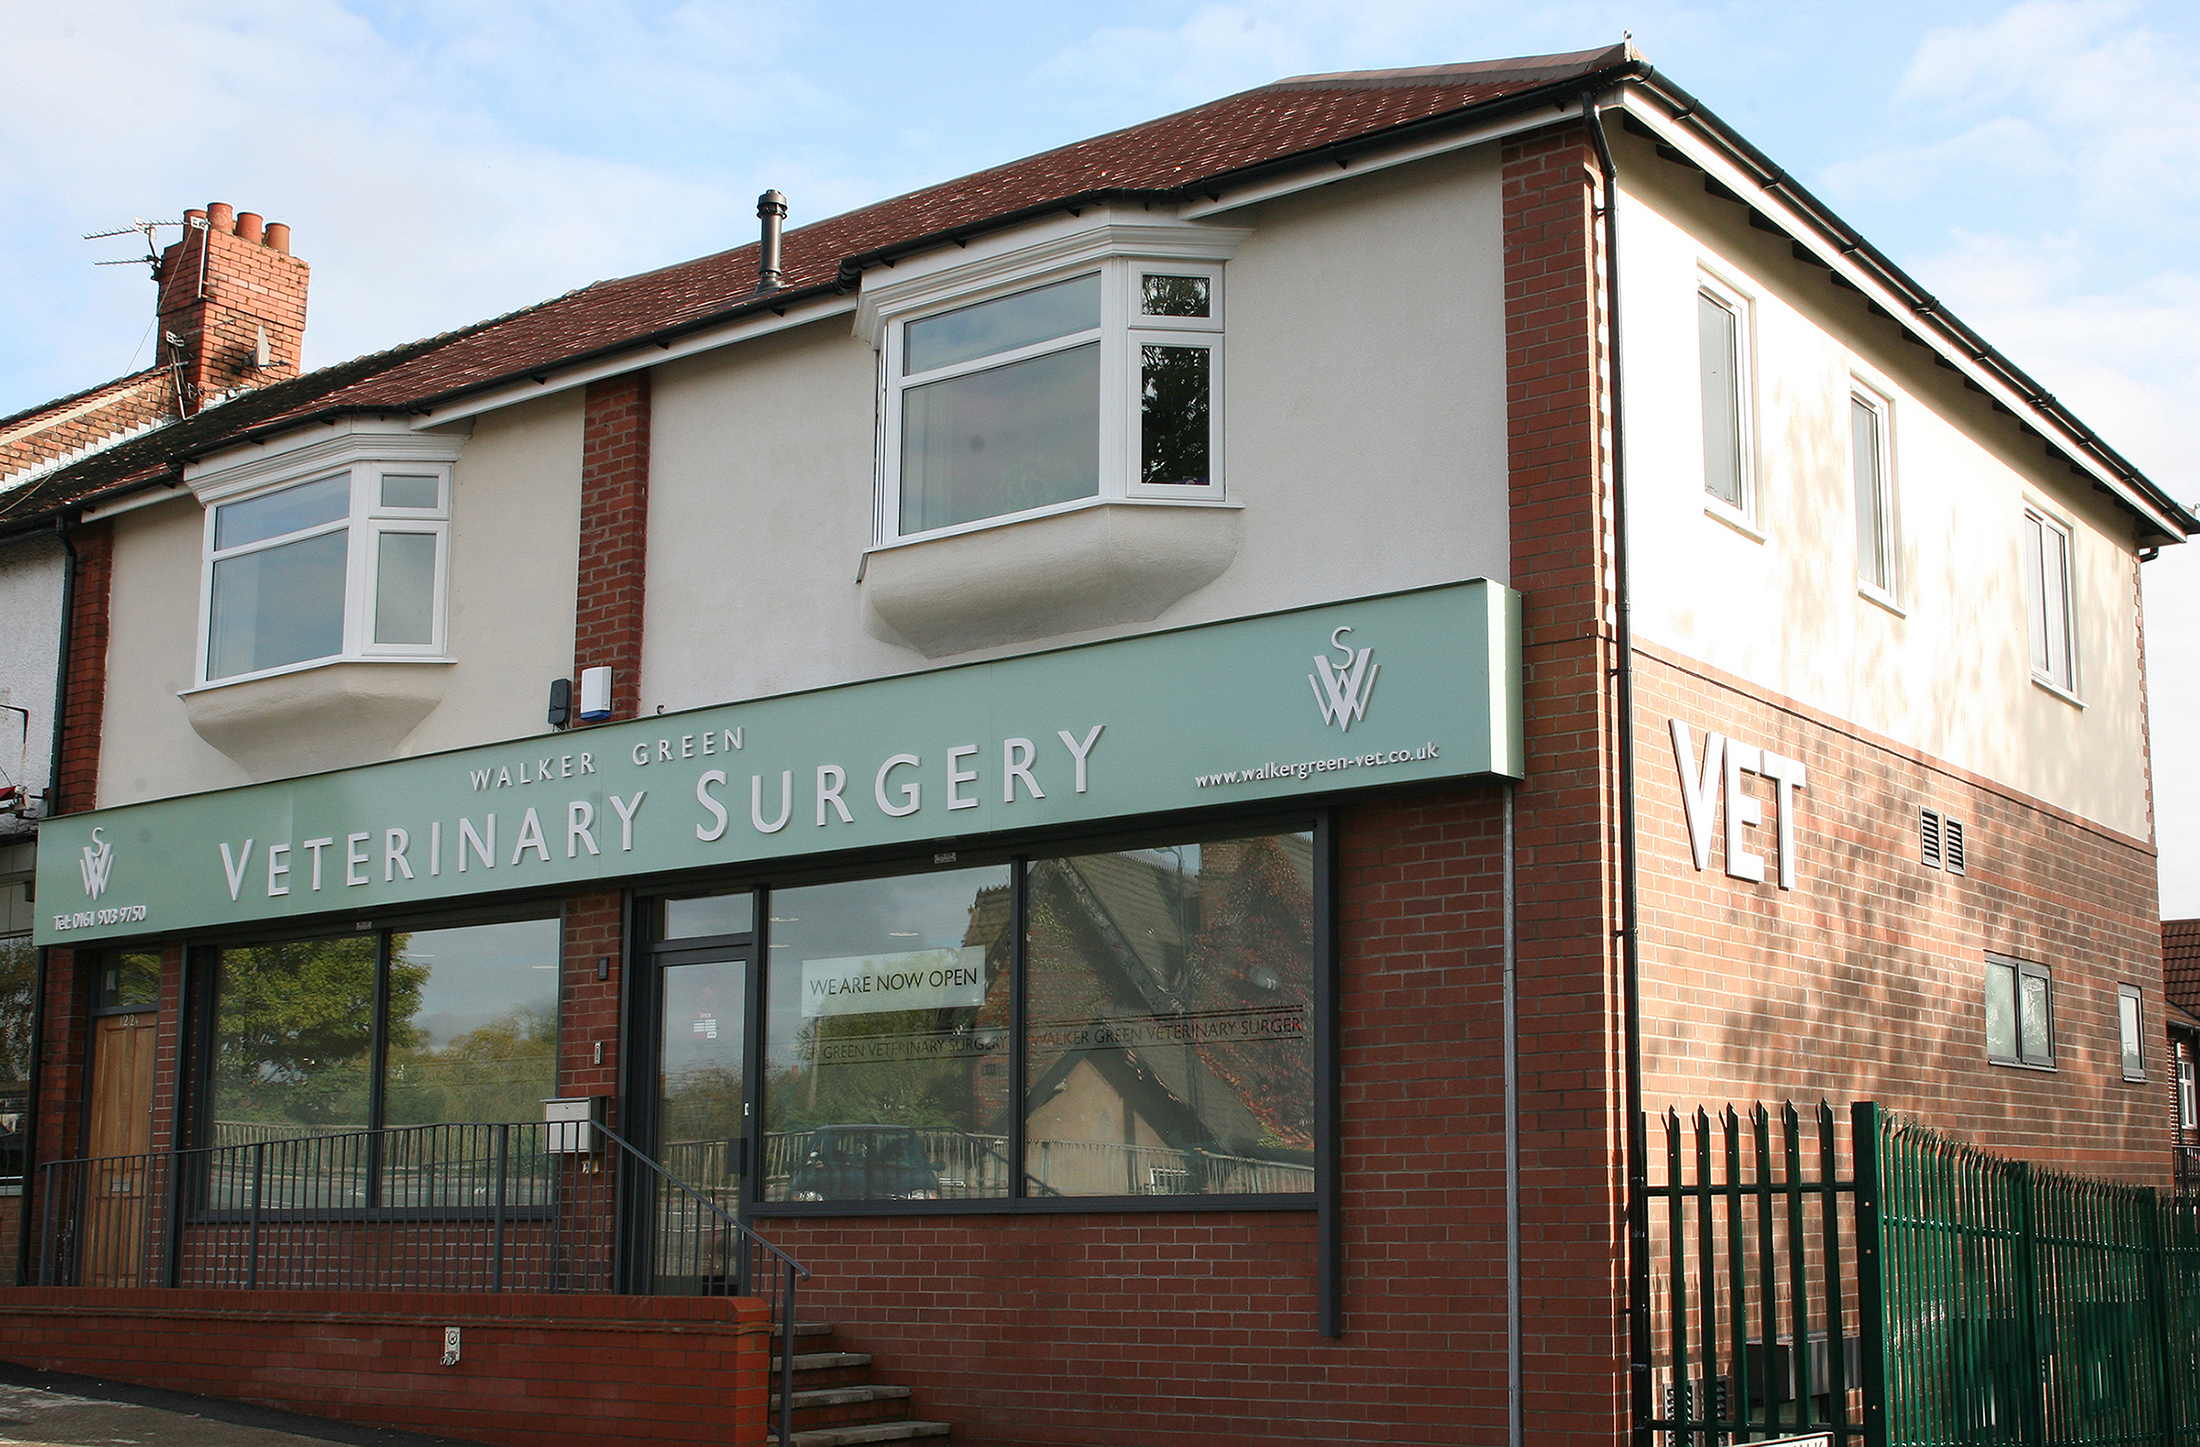 Veterinary Surgery | Vets in Timperley, Cheshire | Walker Green Vets